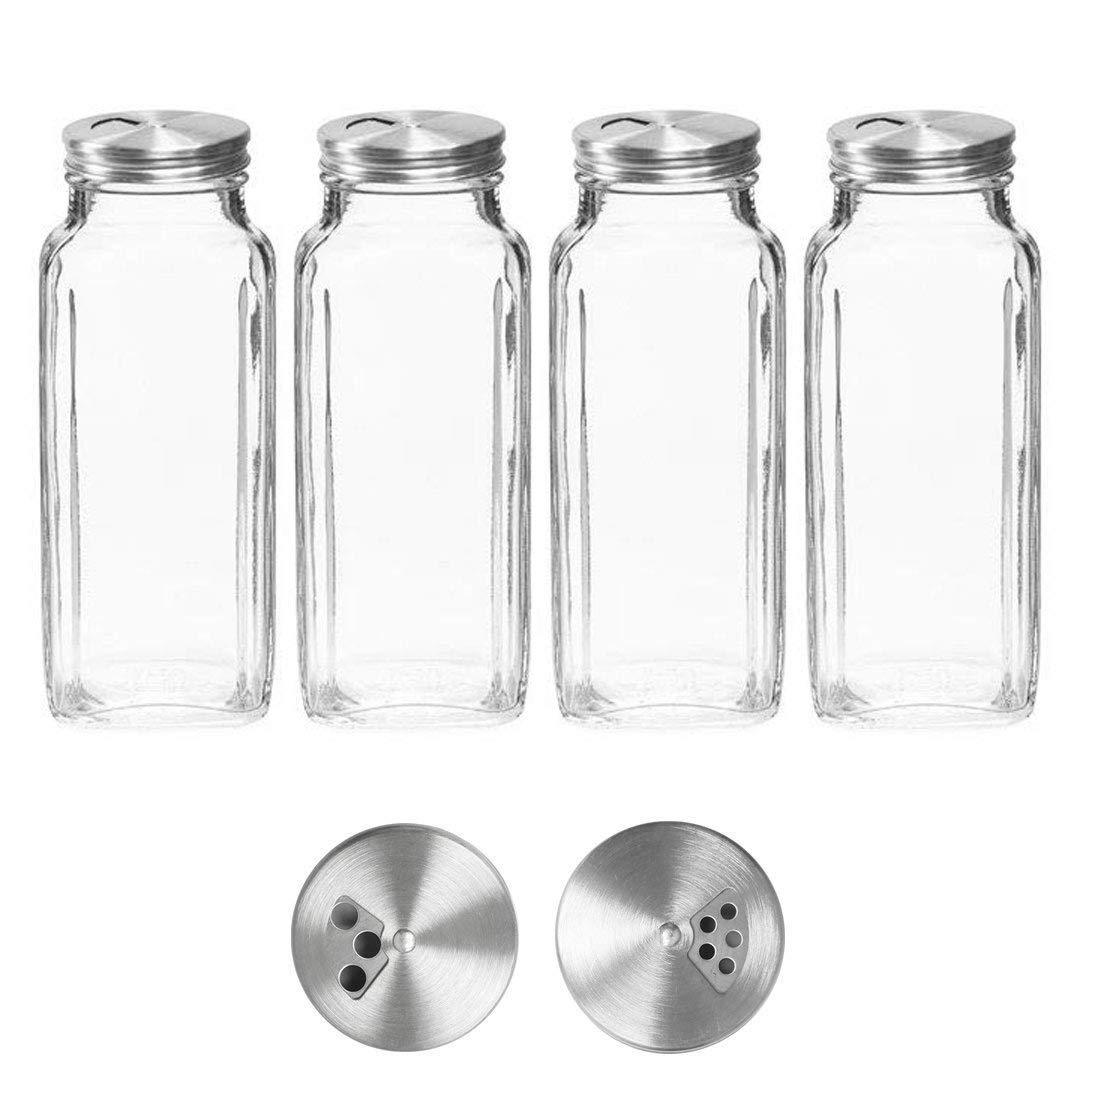 8 oz Spice Jars with Lids - Square Clear Glass Spice Bottles with Stainless Dispenser Caps by SpiceLuxe (4 Pack, Dispenser cap)